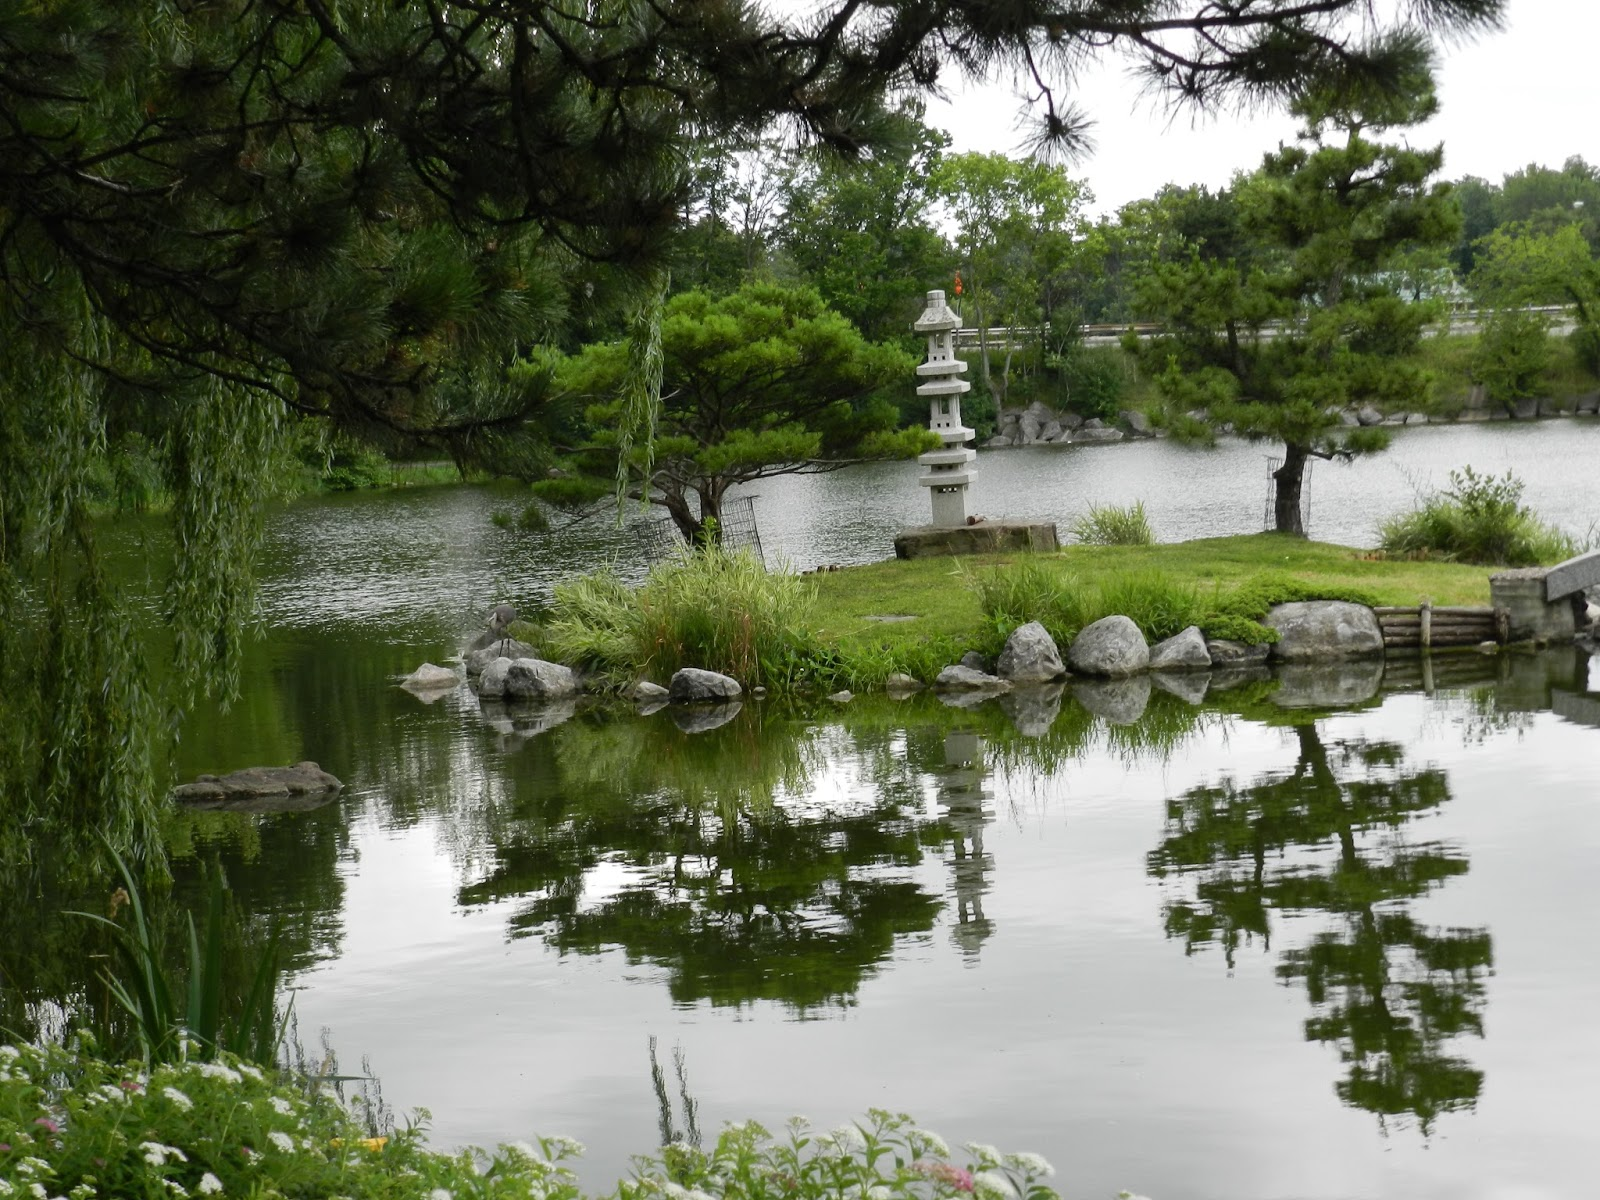 Welcome To The Japanese Garden Of Buffalo Garden Walk We Welcomed Visitors From Every Where